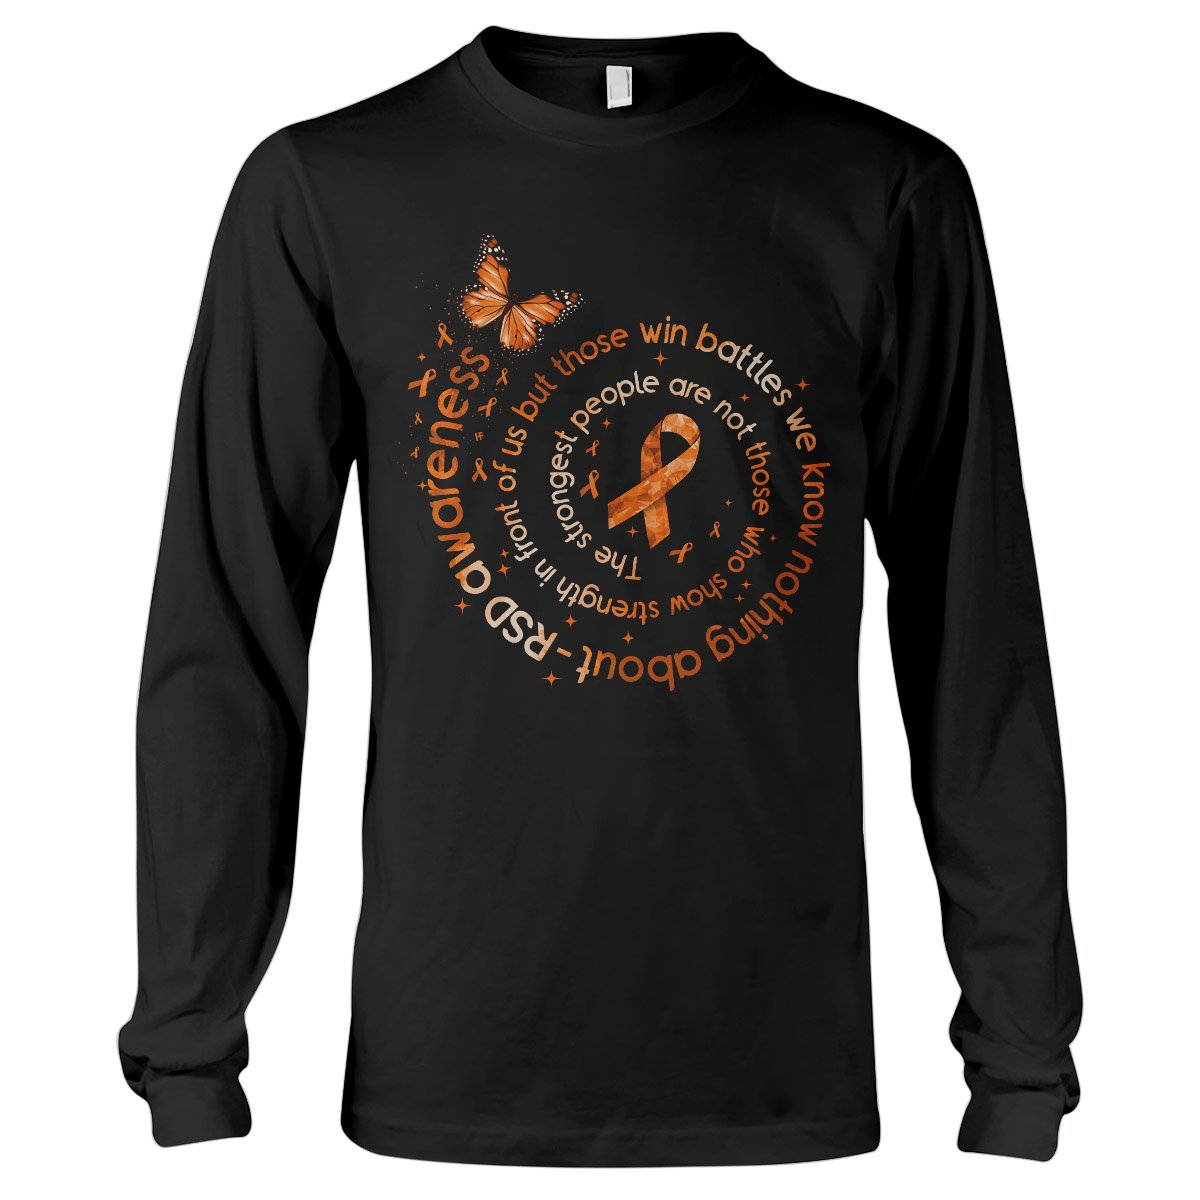 The Strongest People RSD Awareness Long Sleeve T-Shirt